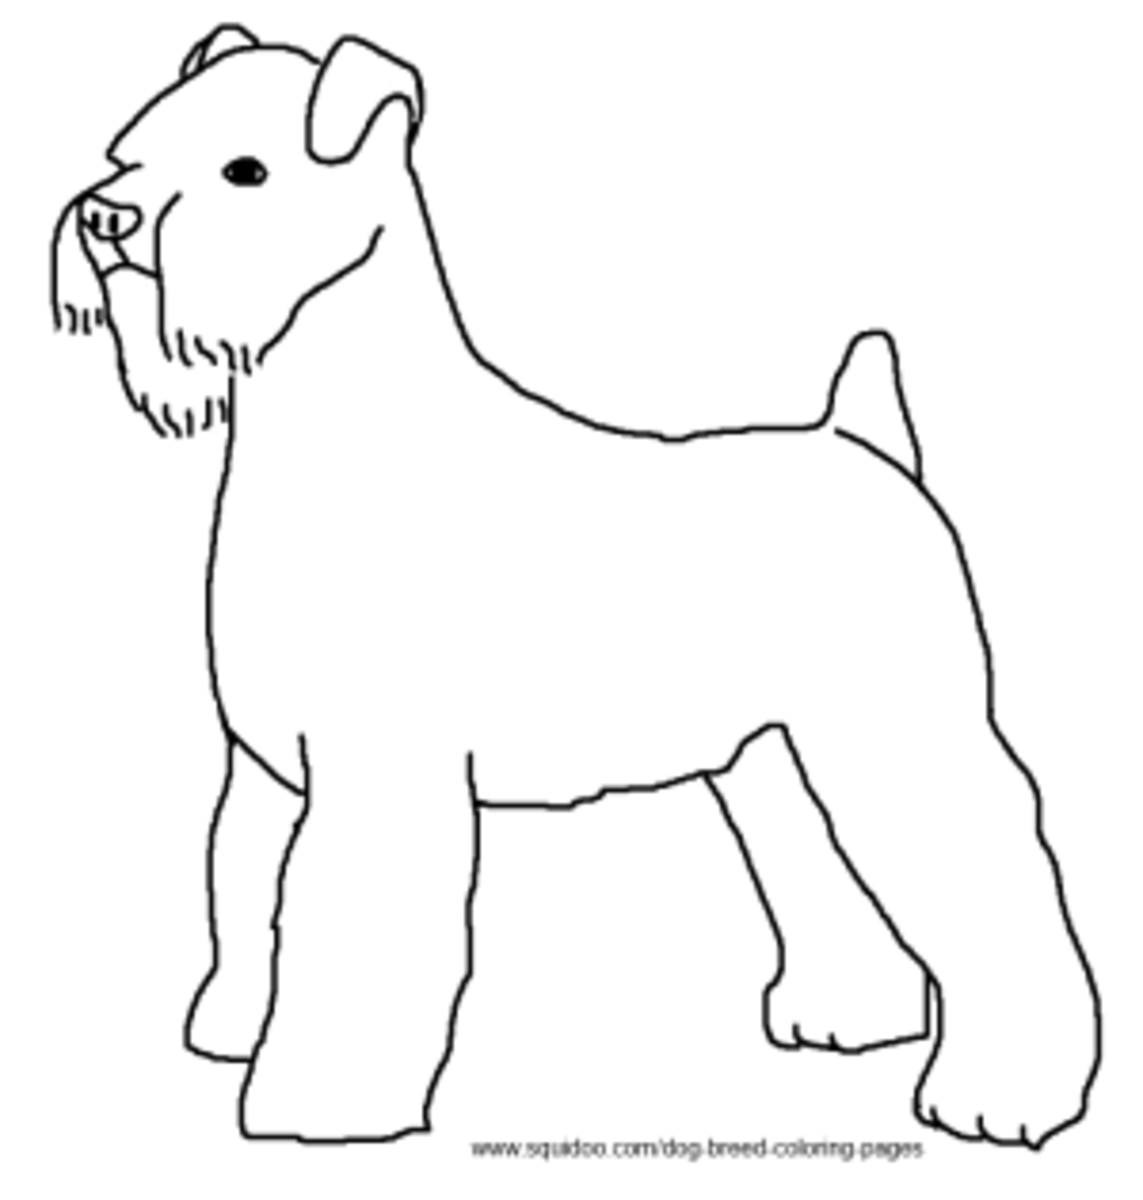 schnauzer coloring pages dogs online coloring pages page 1 pages coloring schnauzer